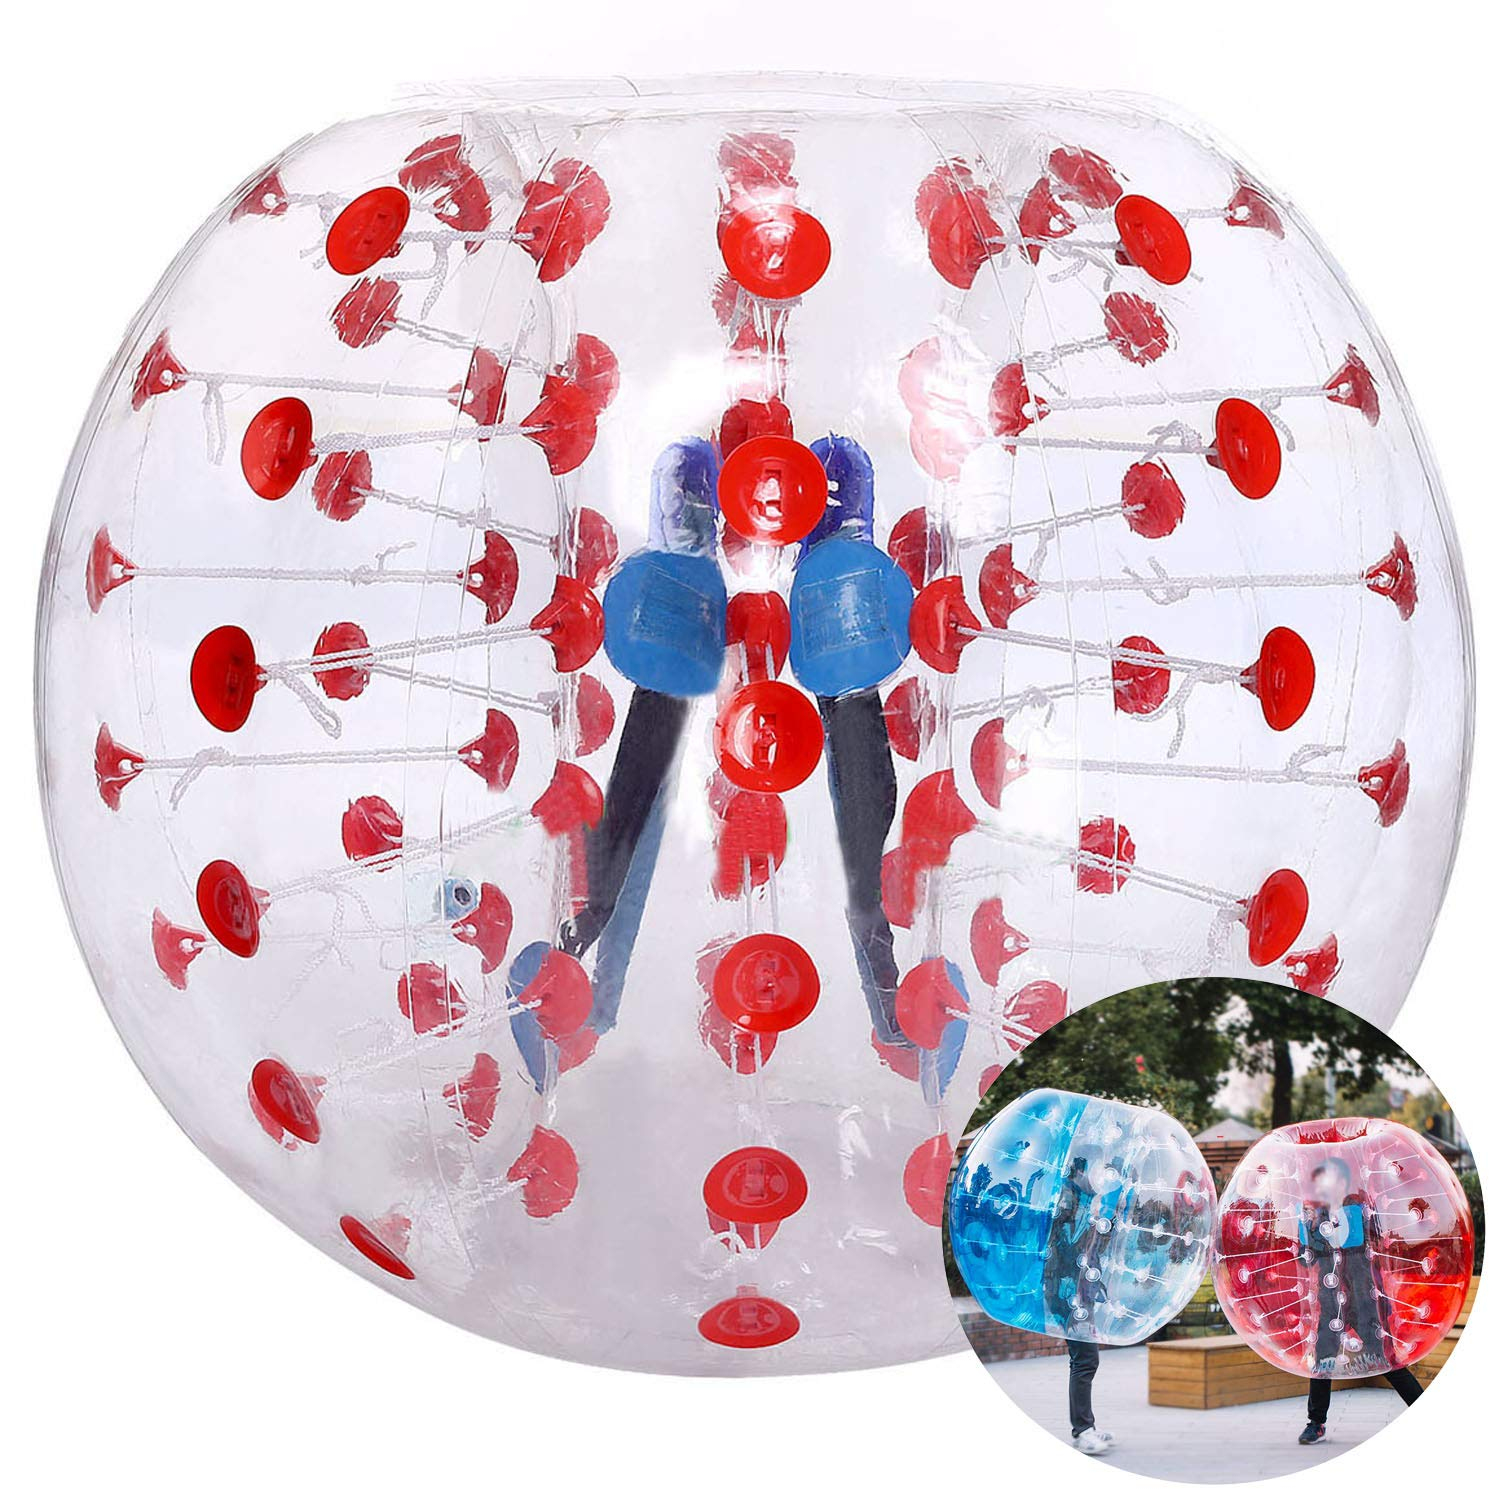 Inflatable Bumper Bubble Soccer Ball, Giant Human Hamster Ball Knocker Ball for Adults & Teens, Body Bumper Dia 4ft/5 ft(1.2m/1.5m) with Repair kit[US Stock]